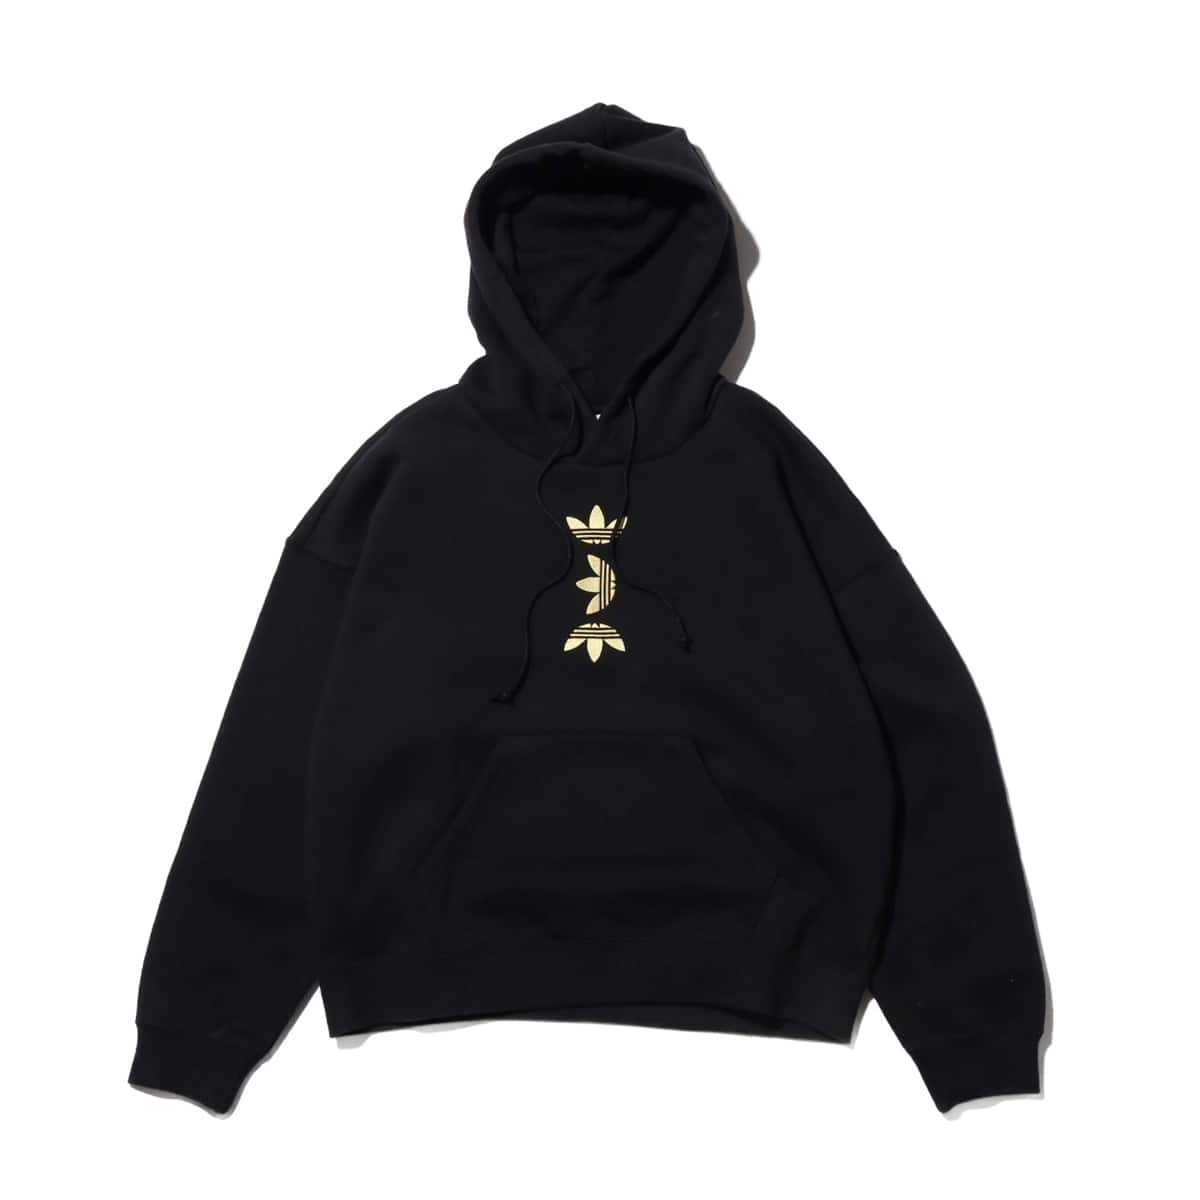 adidas LRG LOGO HOODIE BLACK/GOLD METRIC 20SS-I_photo_large